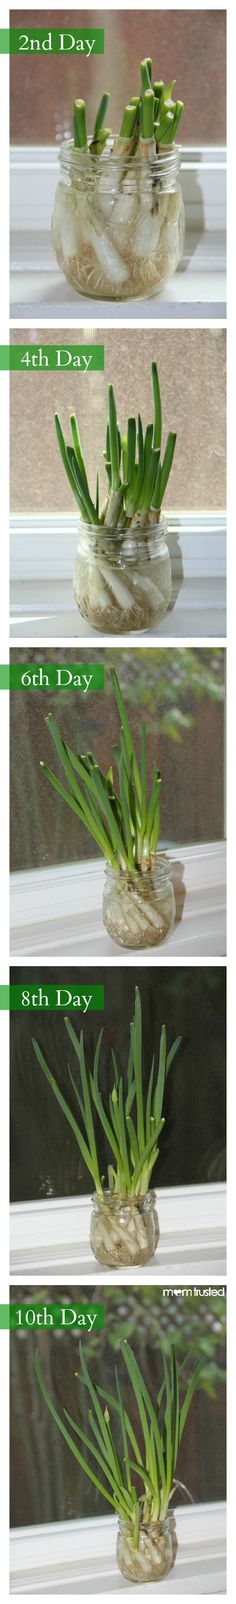 Grow spring/green onions in only 10 days! Great gardening project for kids. Best of all they can be grown on your kitchen bench without soil. Snip & use as needed. Replant the roots in your garden for even longer harvesting. For more tips see http://themicrogardener.com/guide-to-growing-spring-onions/. | The Micro Gardener